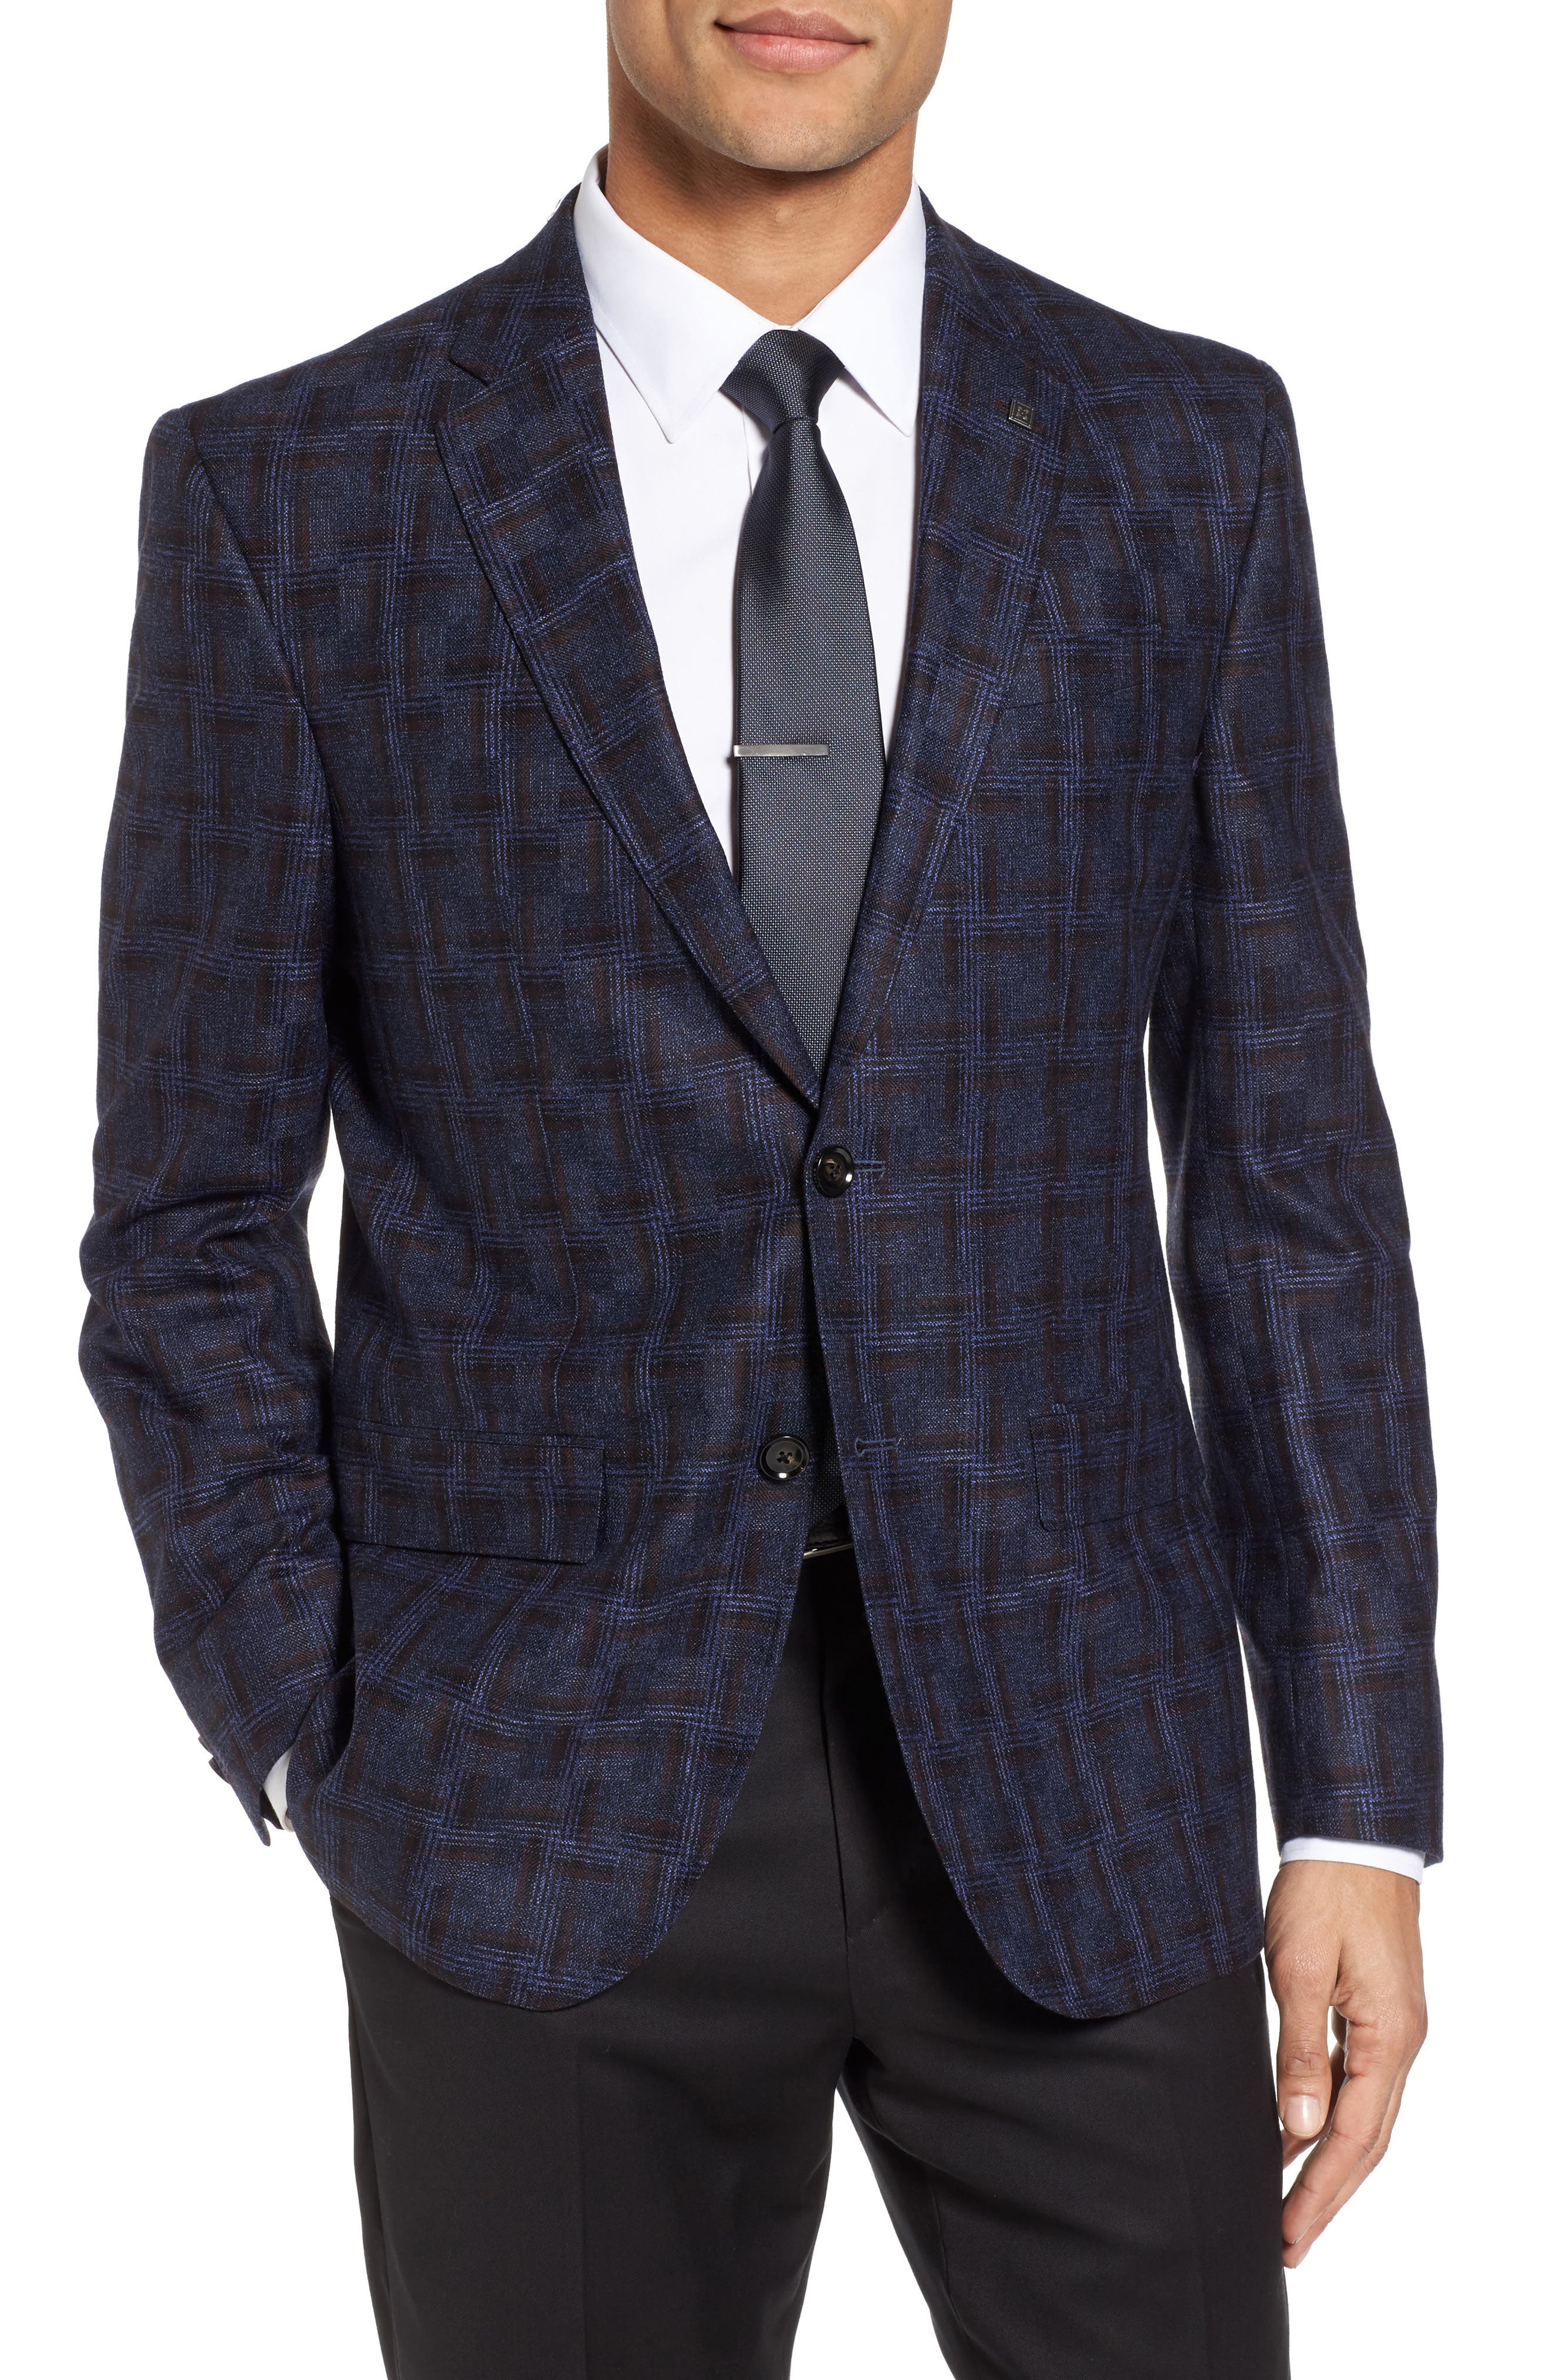 Jay Trim Fit Plaid Wool Sport Coat,                         Main,                         color,